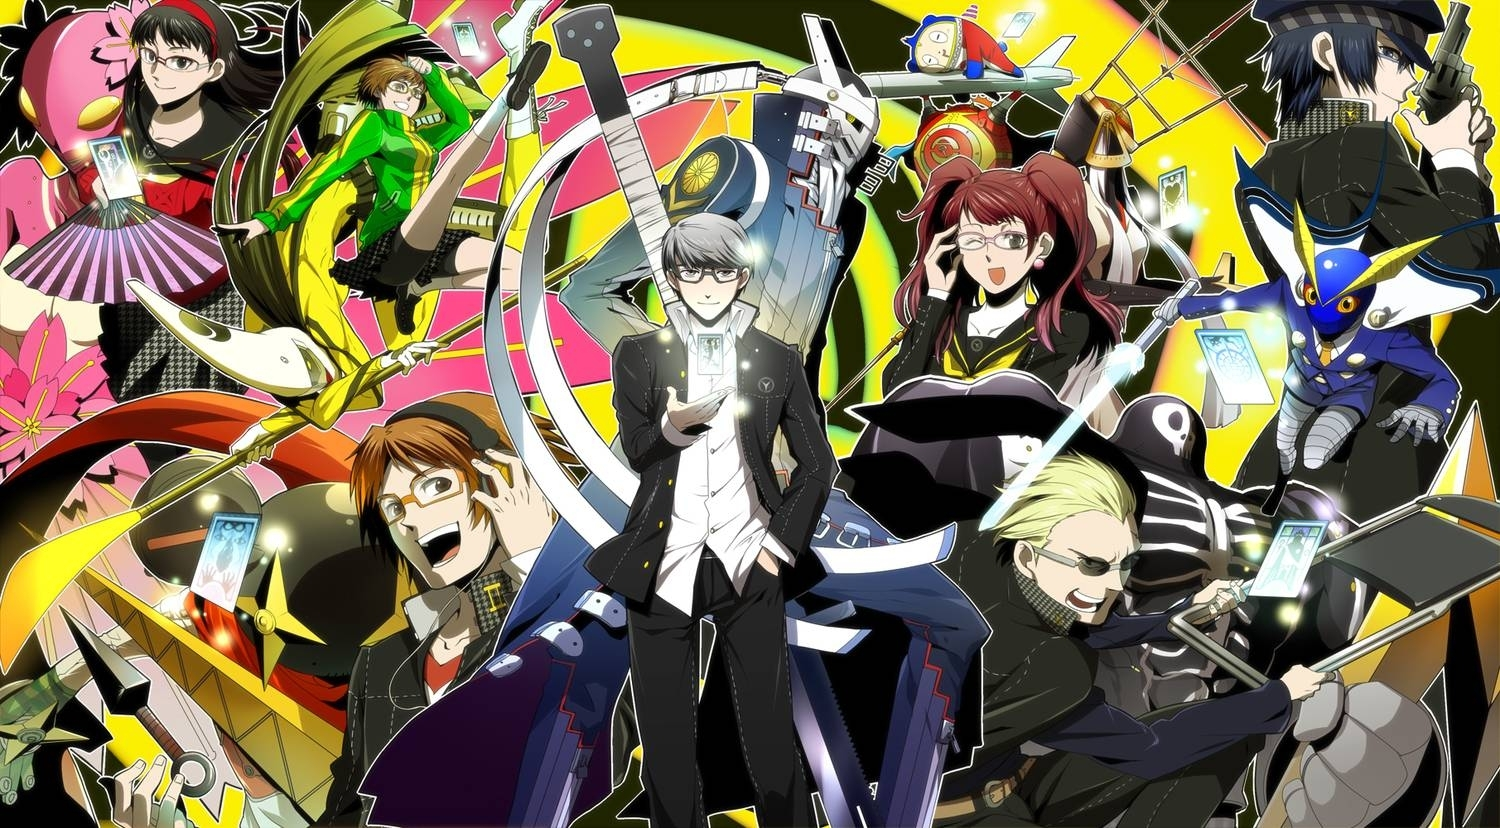 persona 4 wallpapers - wallpaper cave